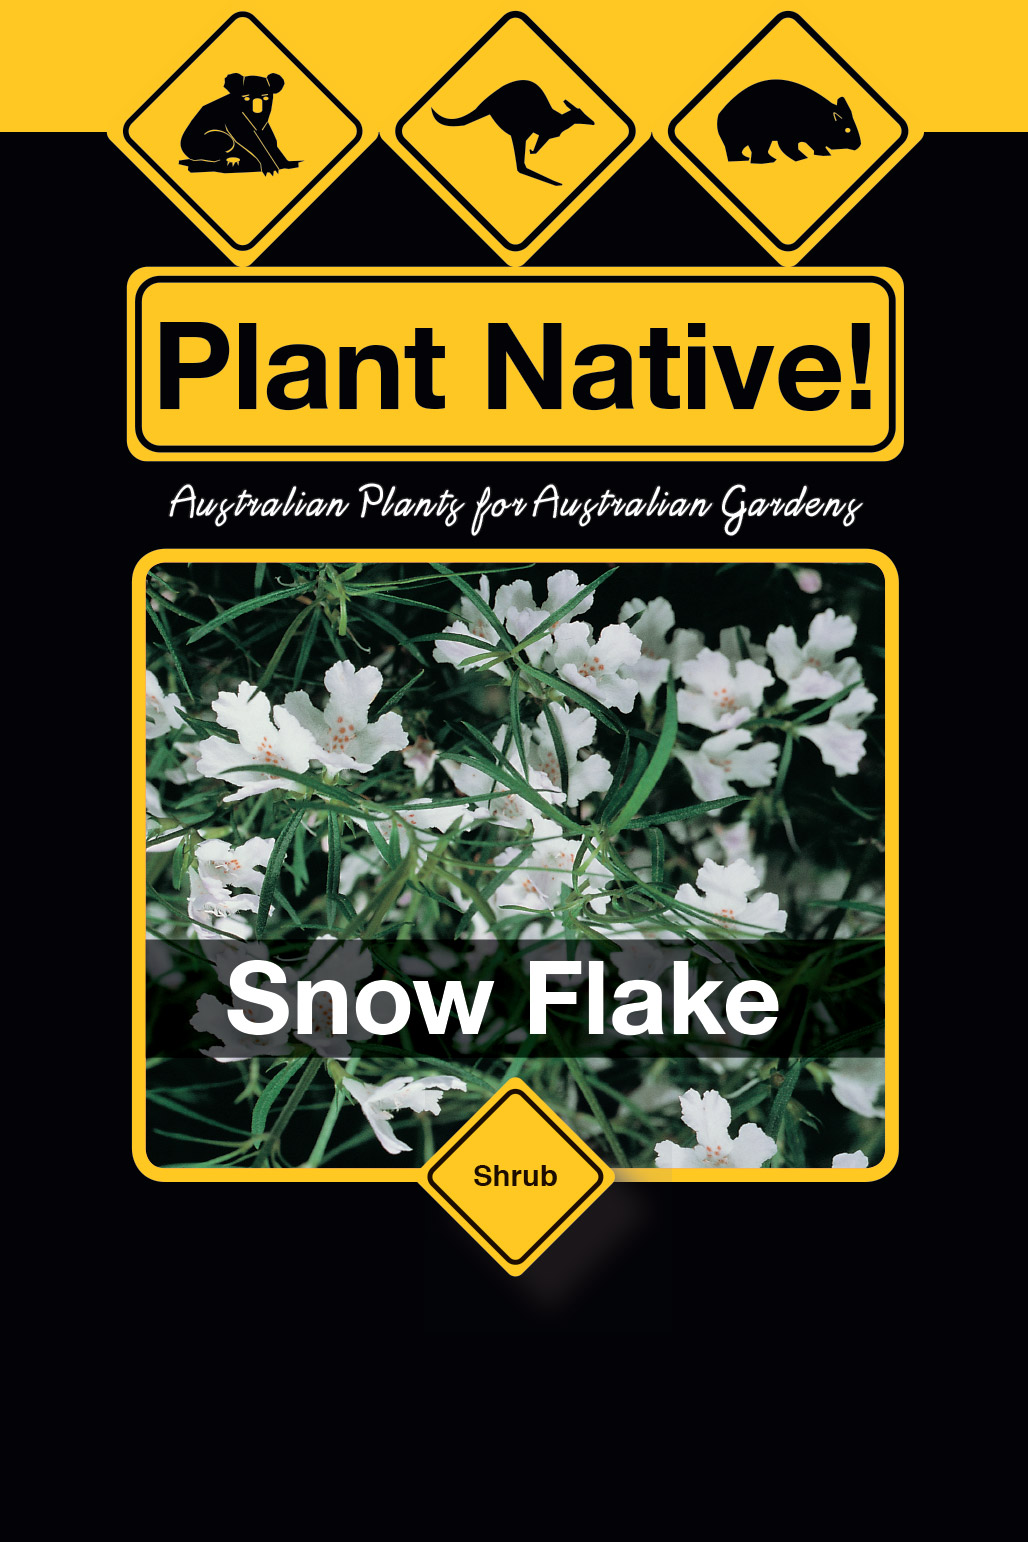 Snow Flake - Plant Native!